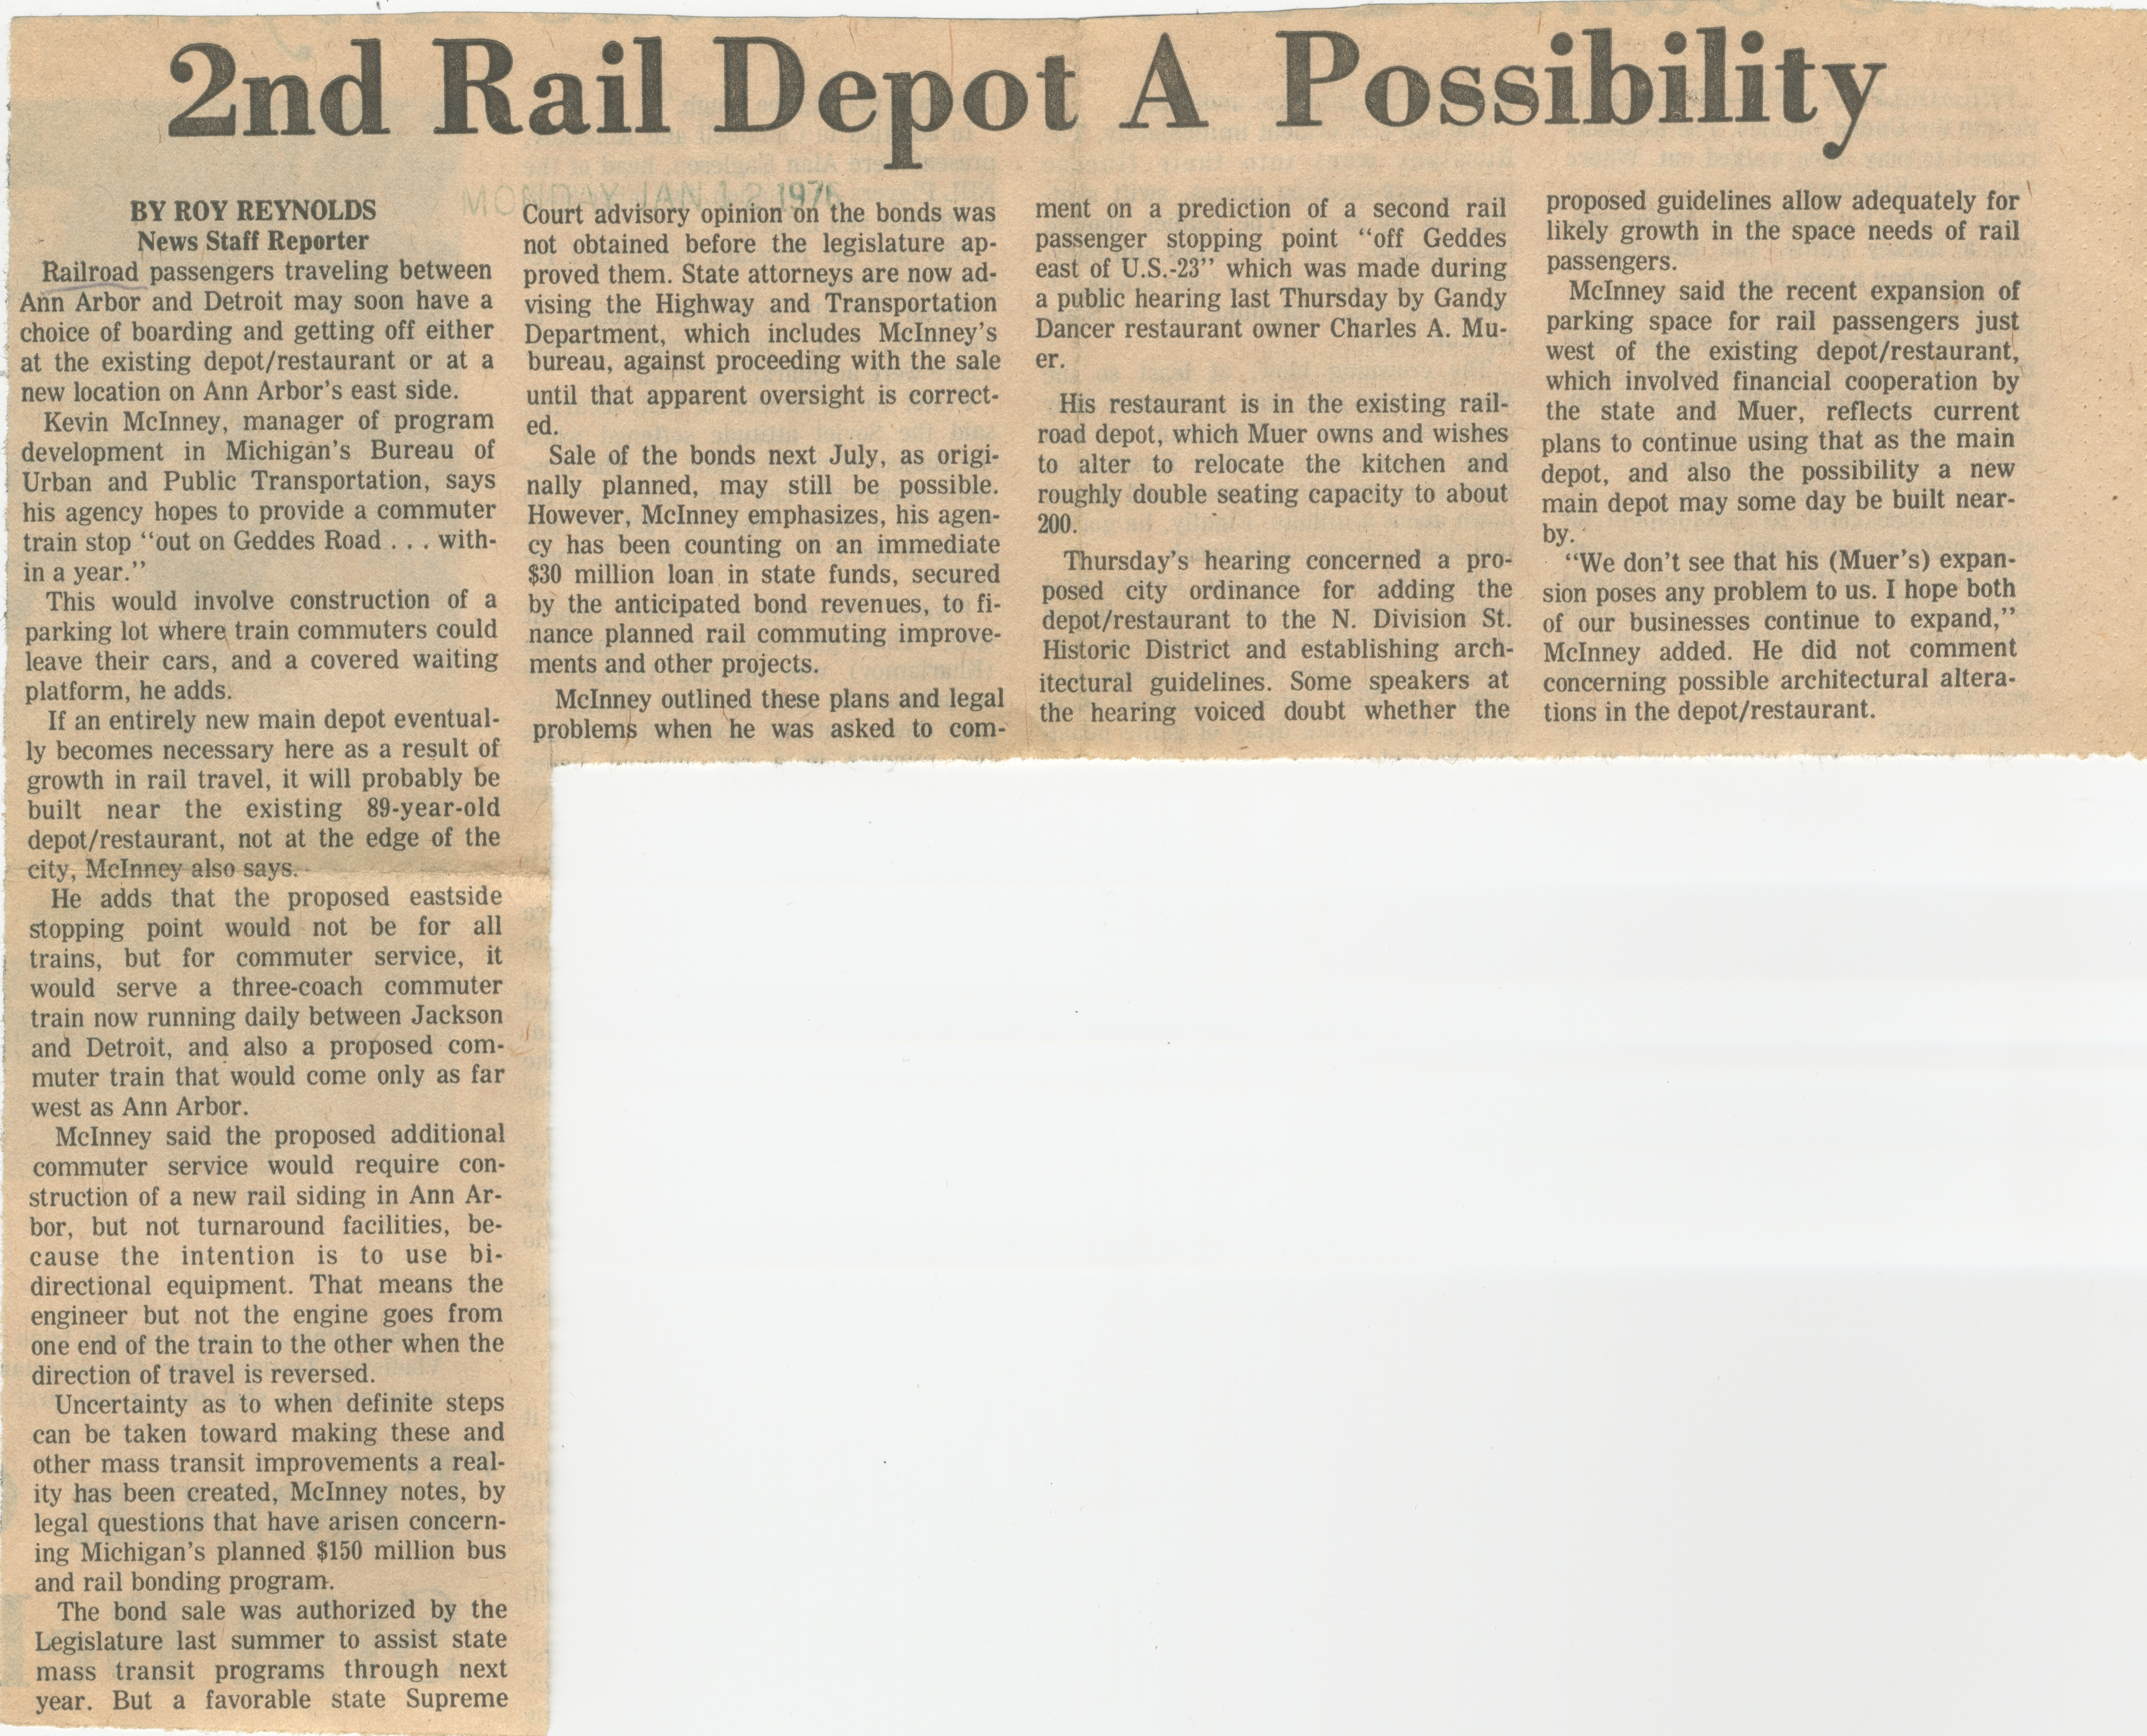 2nd Rail Depot A Possibility image